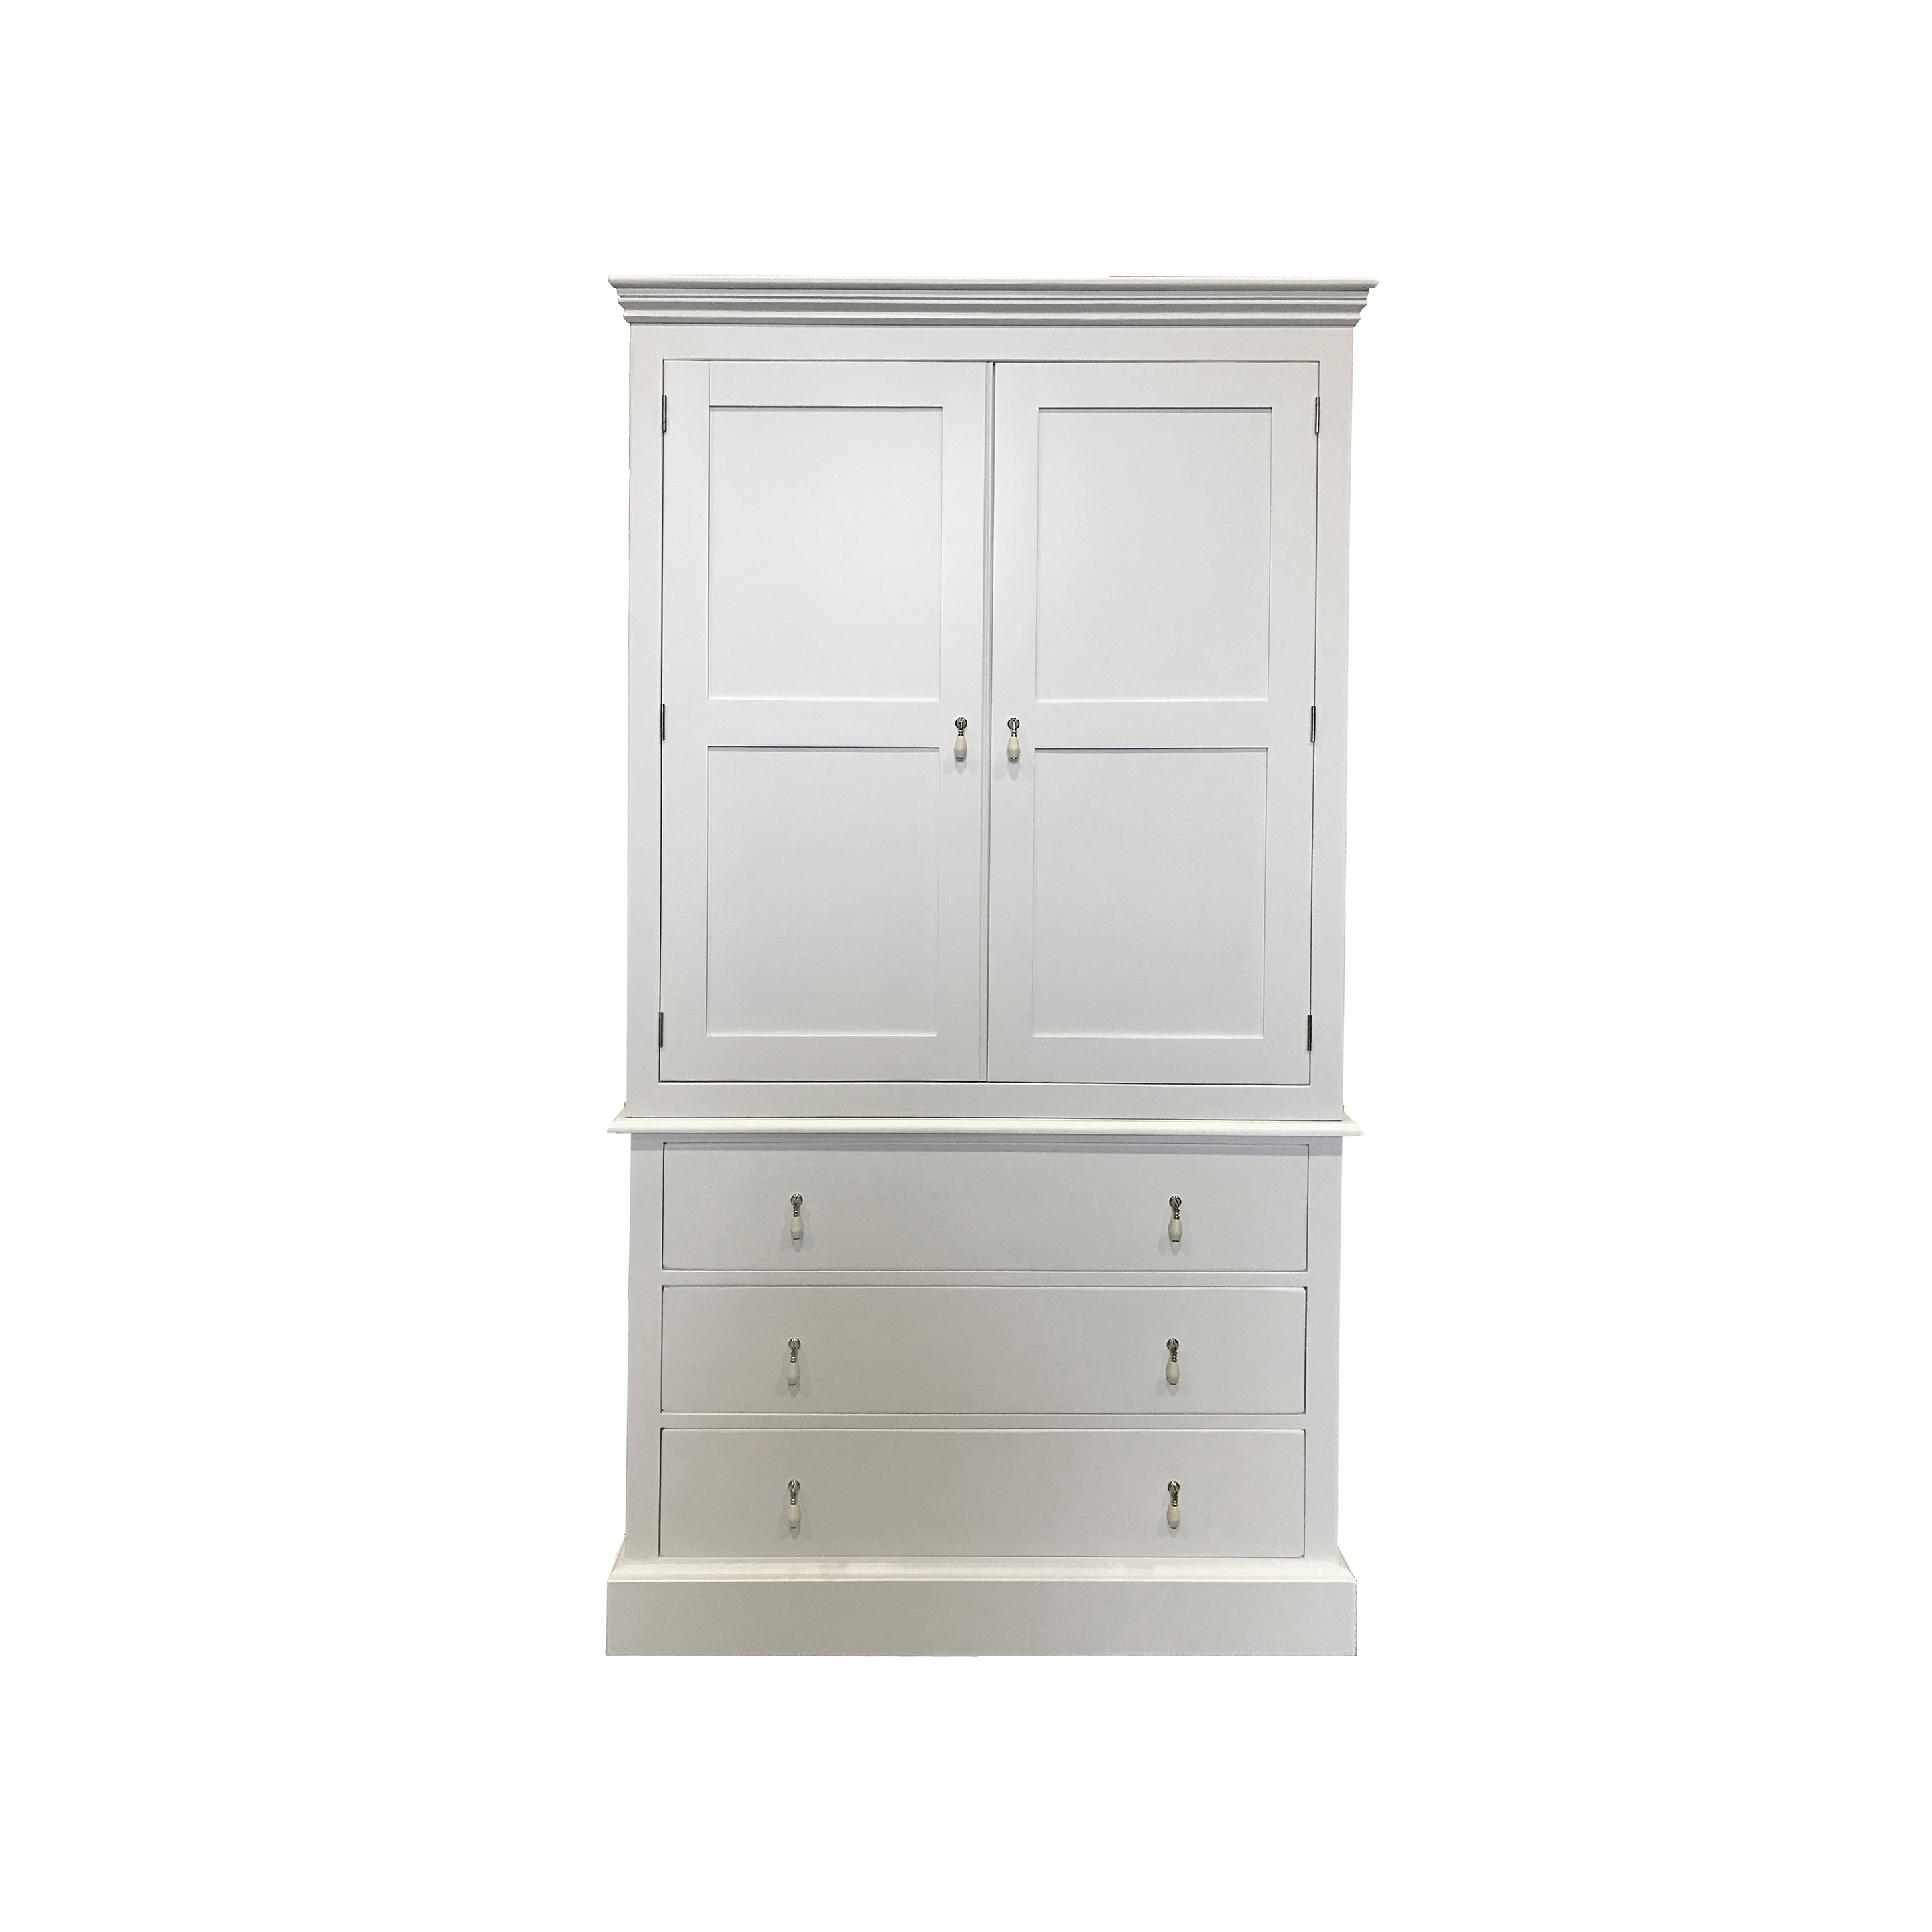 Wardrobes Chest Of Drawers Combination Inside Favorite 3 Drawer Double Combination Wardrobe – Wimborne White – Kensington (View 10 of 15)